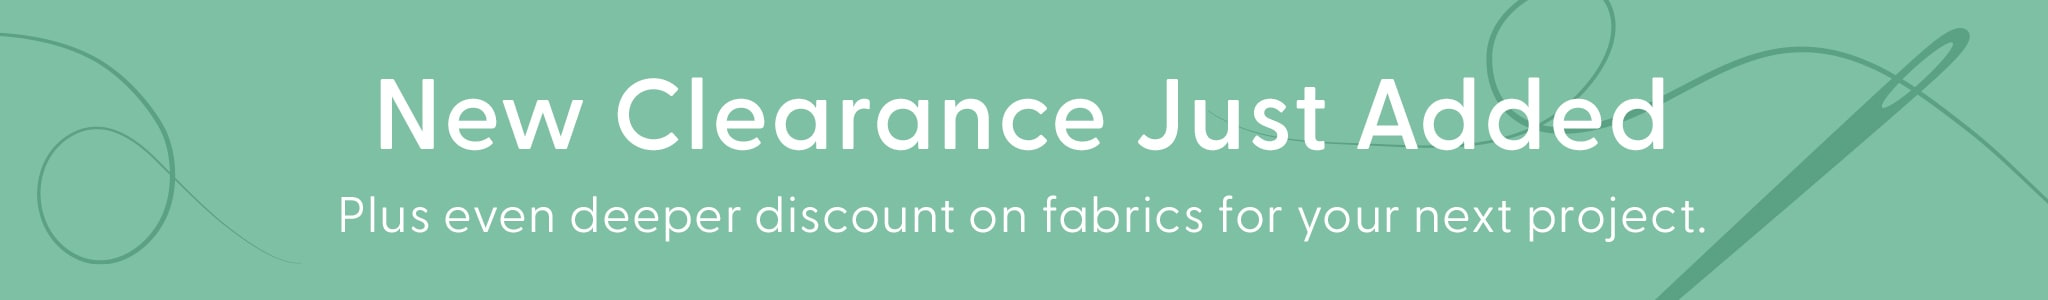 Deeper Discounts on clearance. Save even more on fabrics and Supplies for your next project